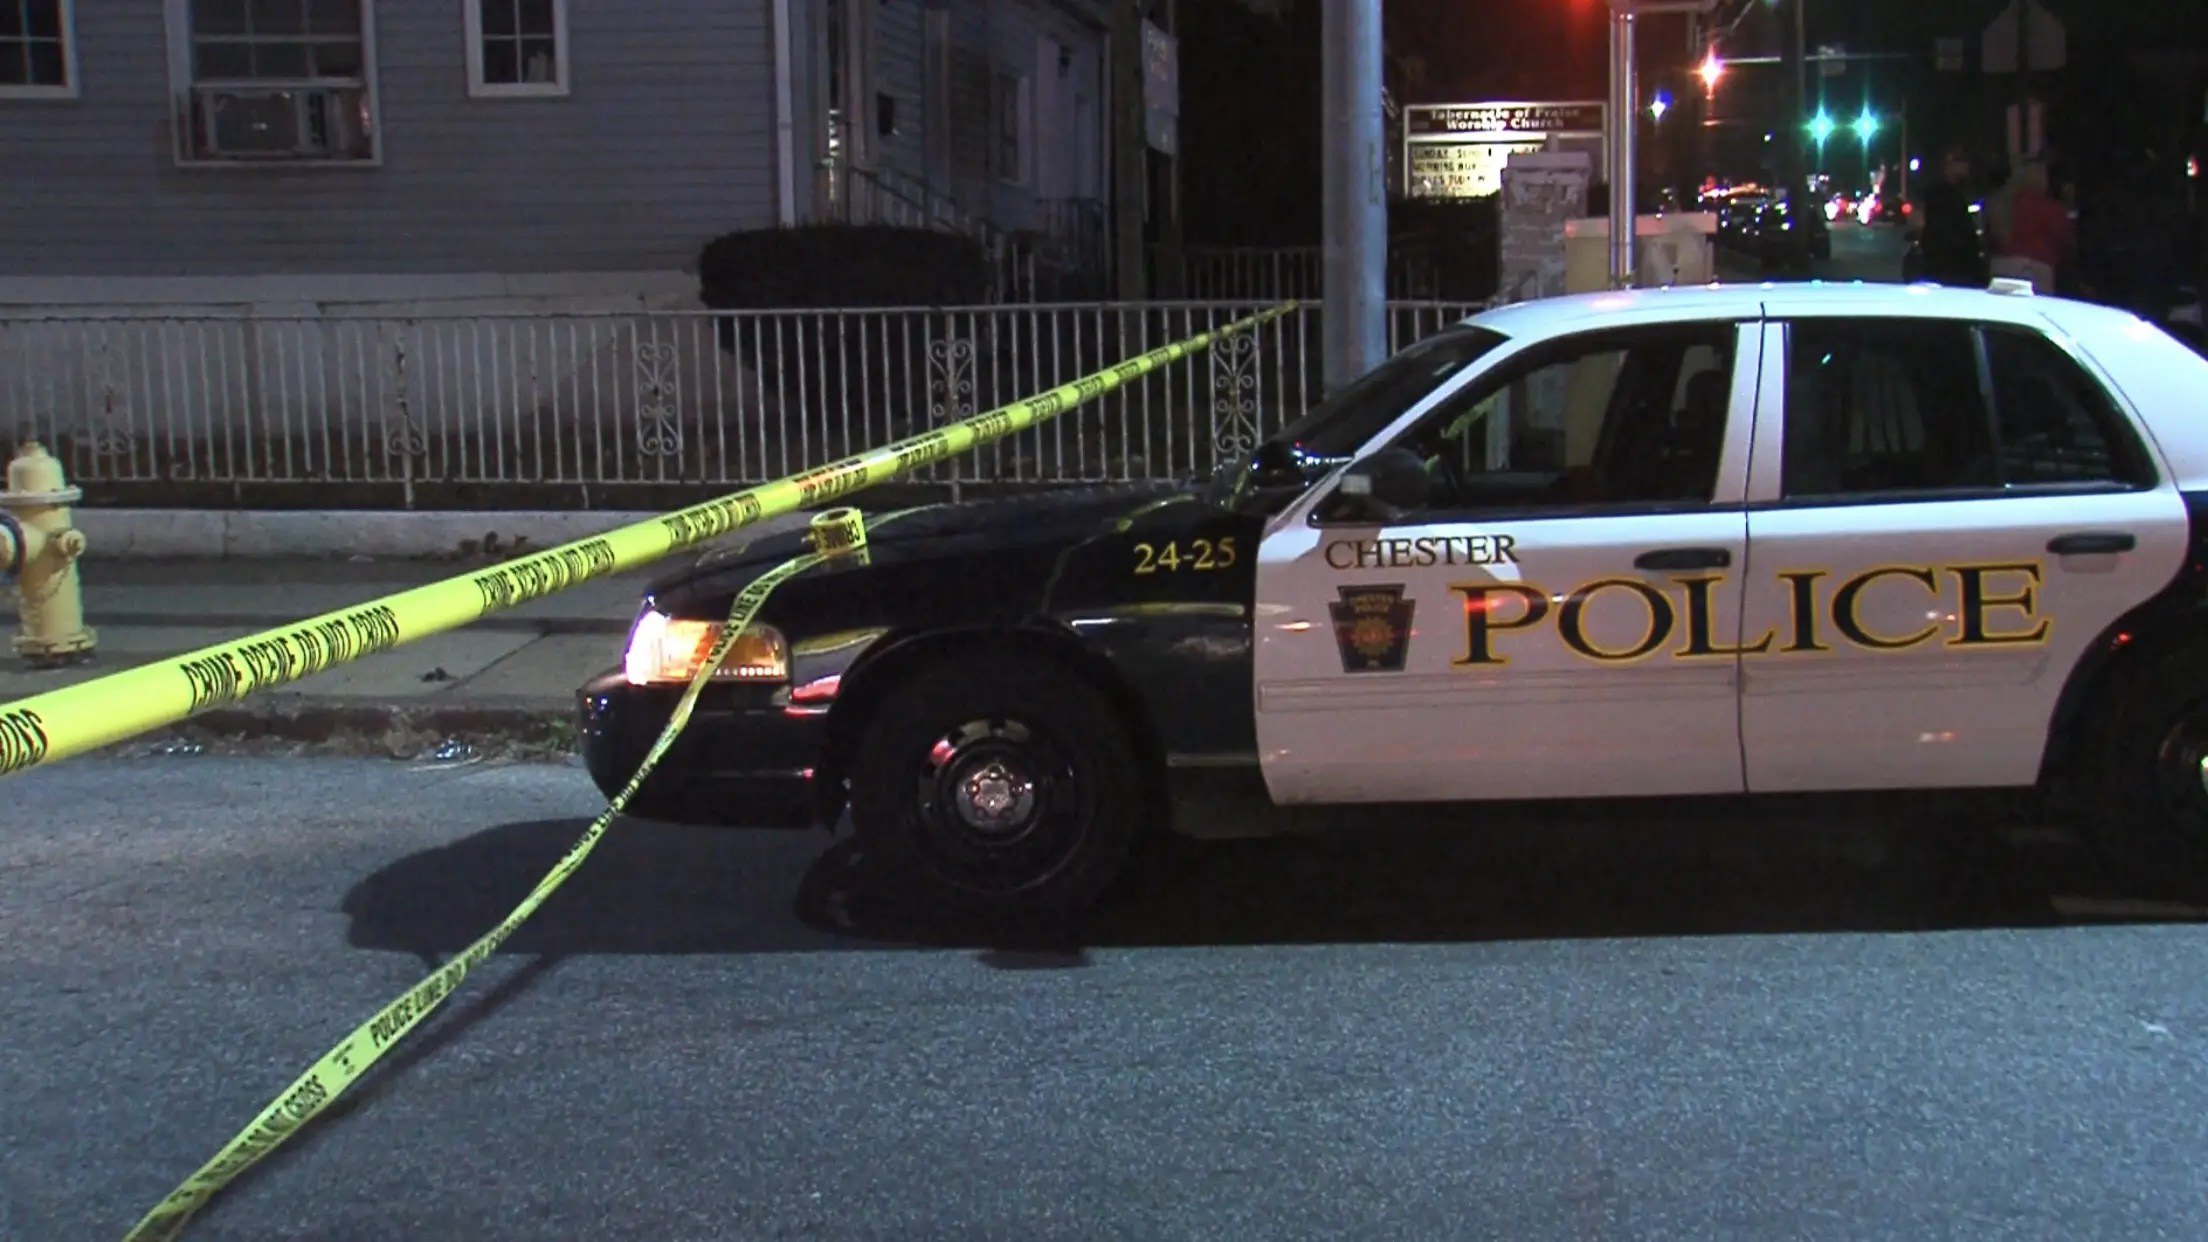 Man shot in car in Chester City Saturday night – YC.NEWS